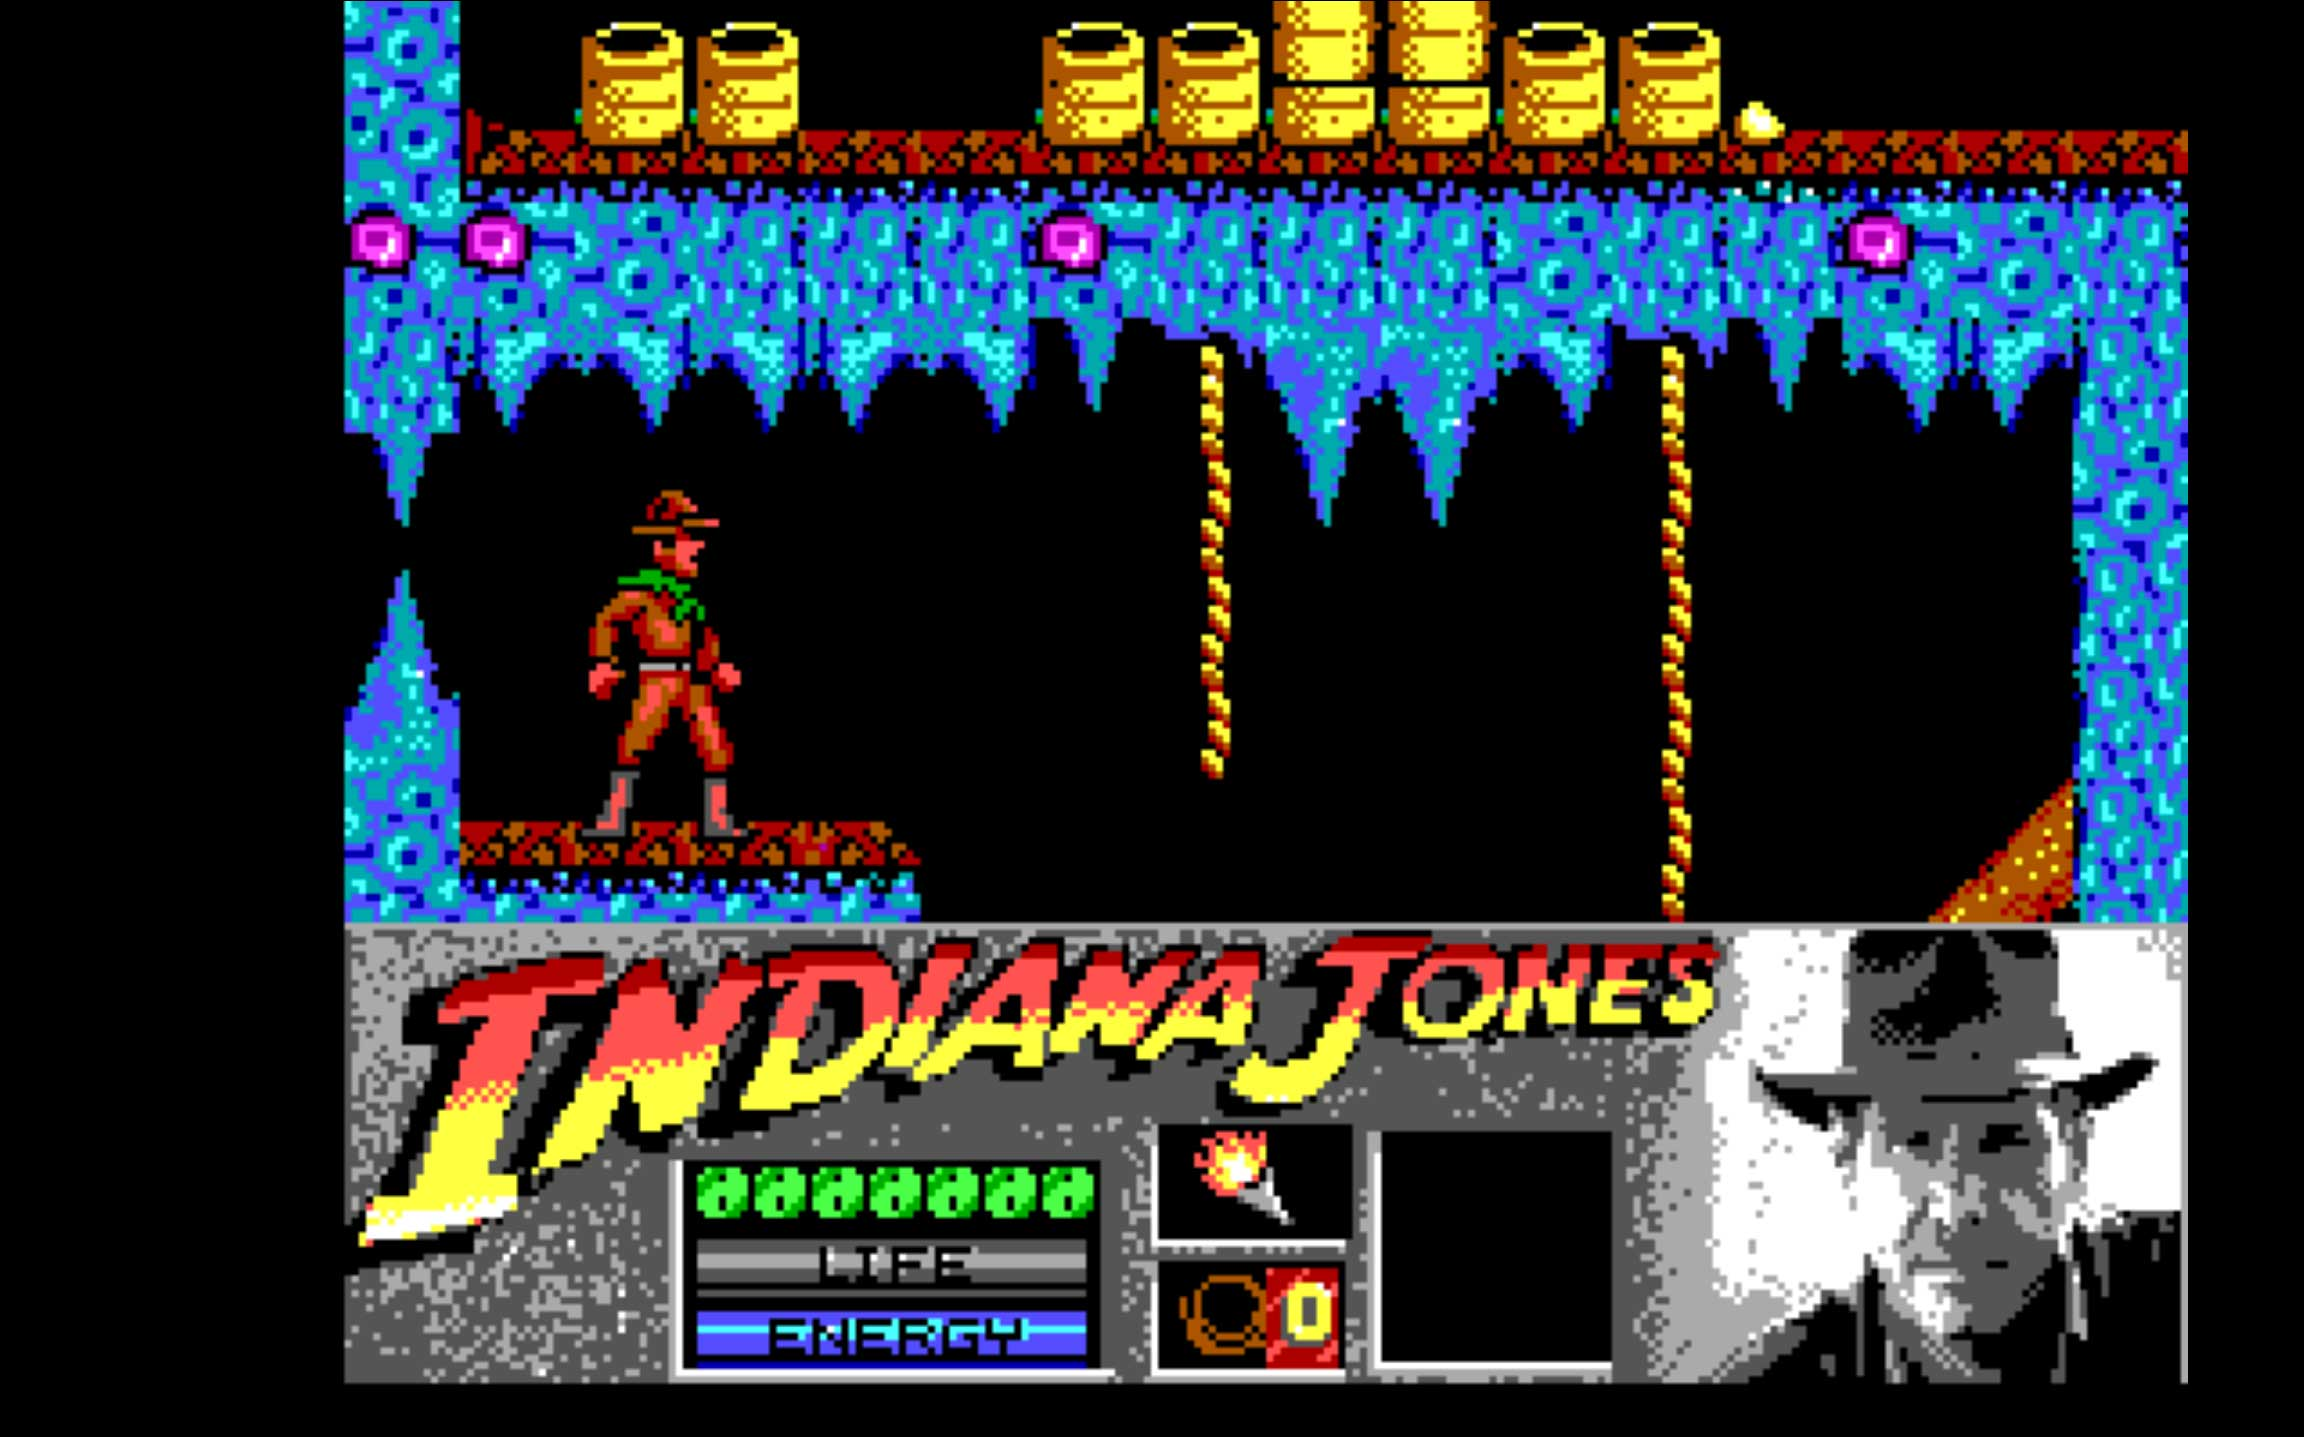 Indiana Jones and the Last Crusade - The Action Game (1989)                                                              This 1989 title was a Holy Grail for gamers, because it gave them control of Indiana Jones, one of the 80's coolest characters.